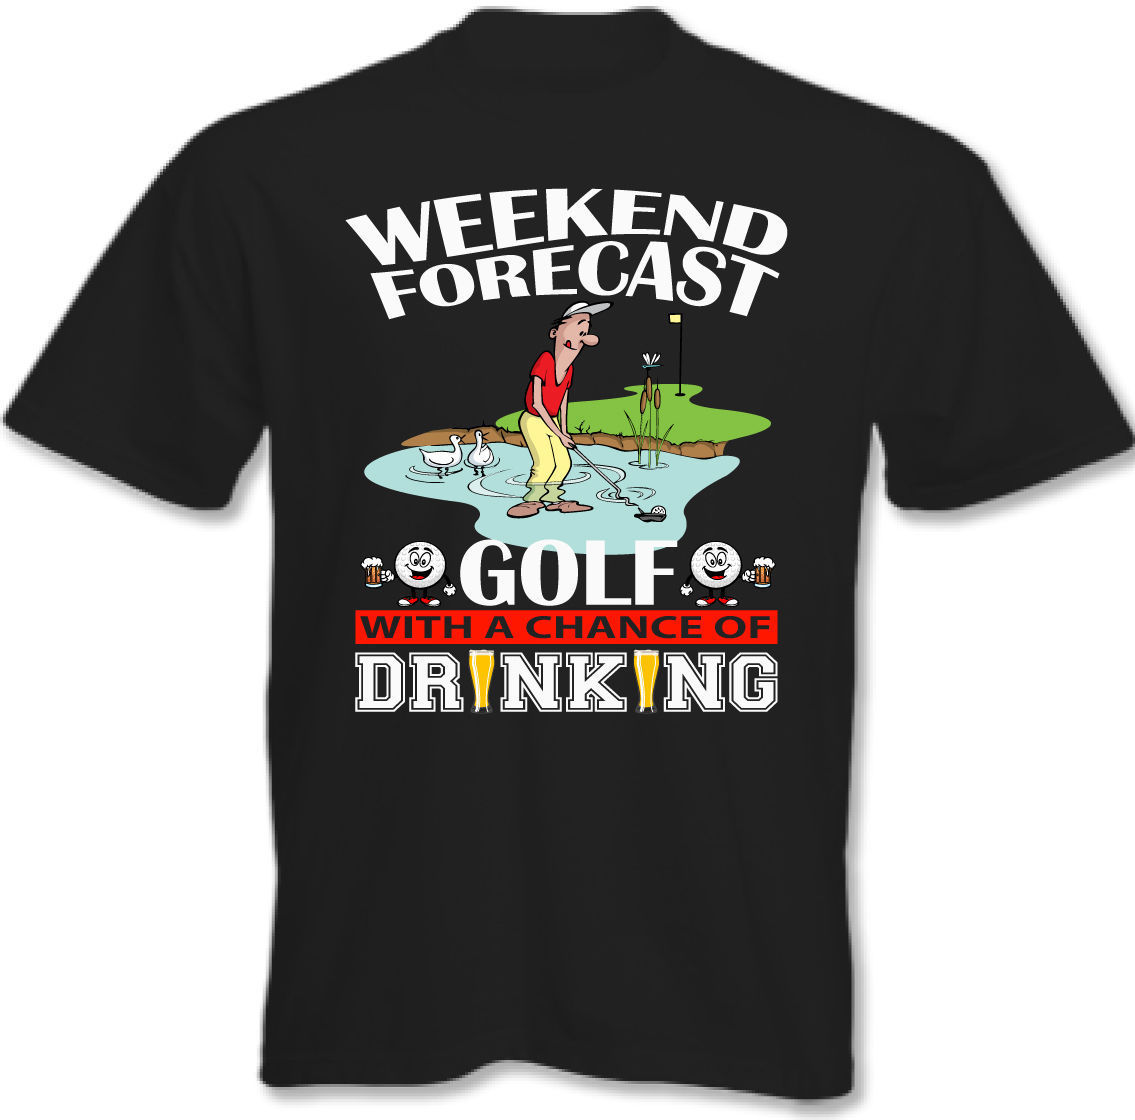 Weekend Forecast GOLF bere - T-shirt Uomo Club borsa Putter PILOTA Maglietta ...